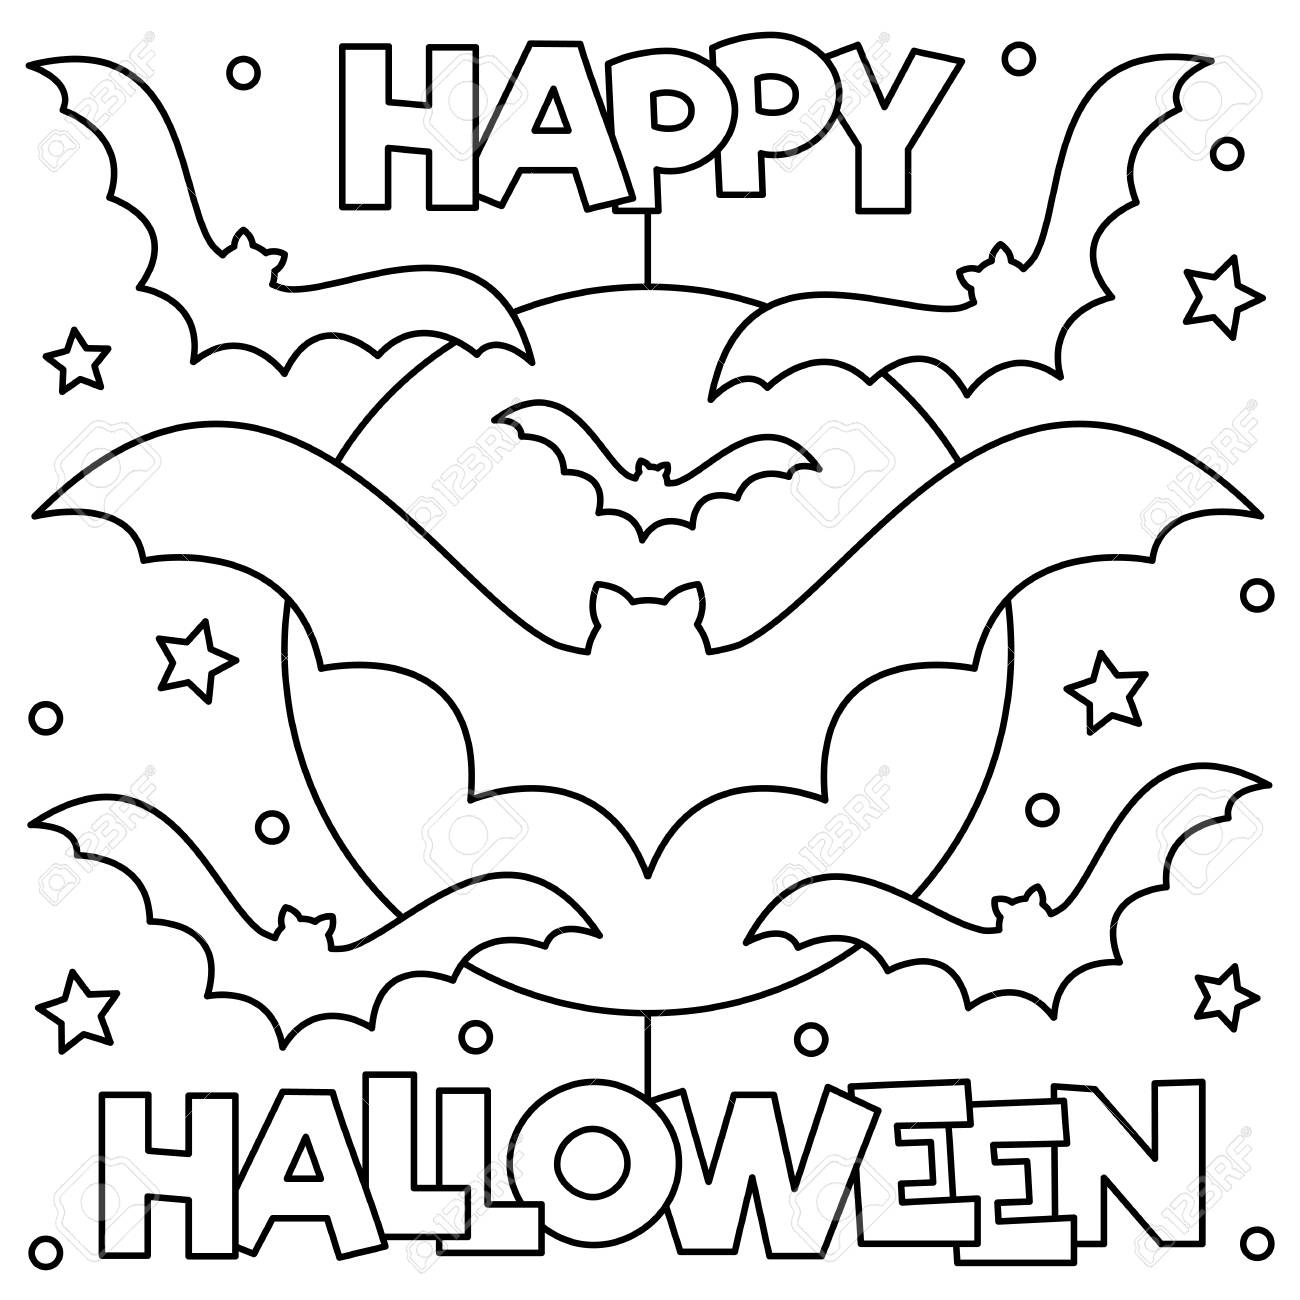 Happy Halloween. Coloring page. Black and white vector illustration - 111631549